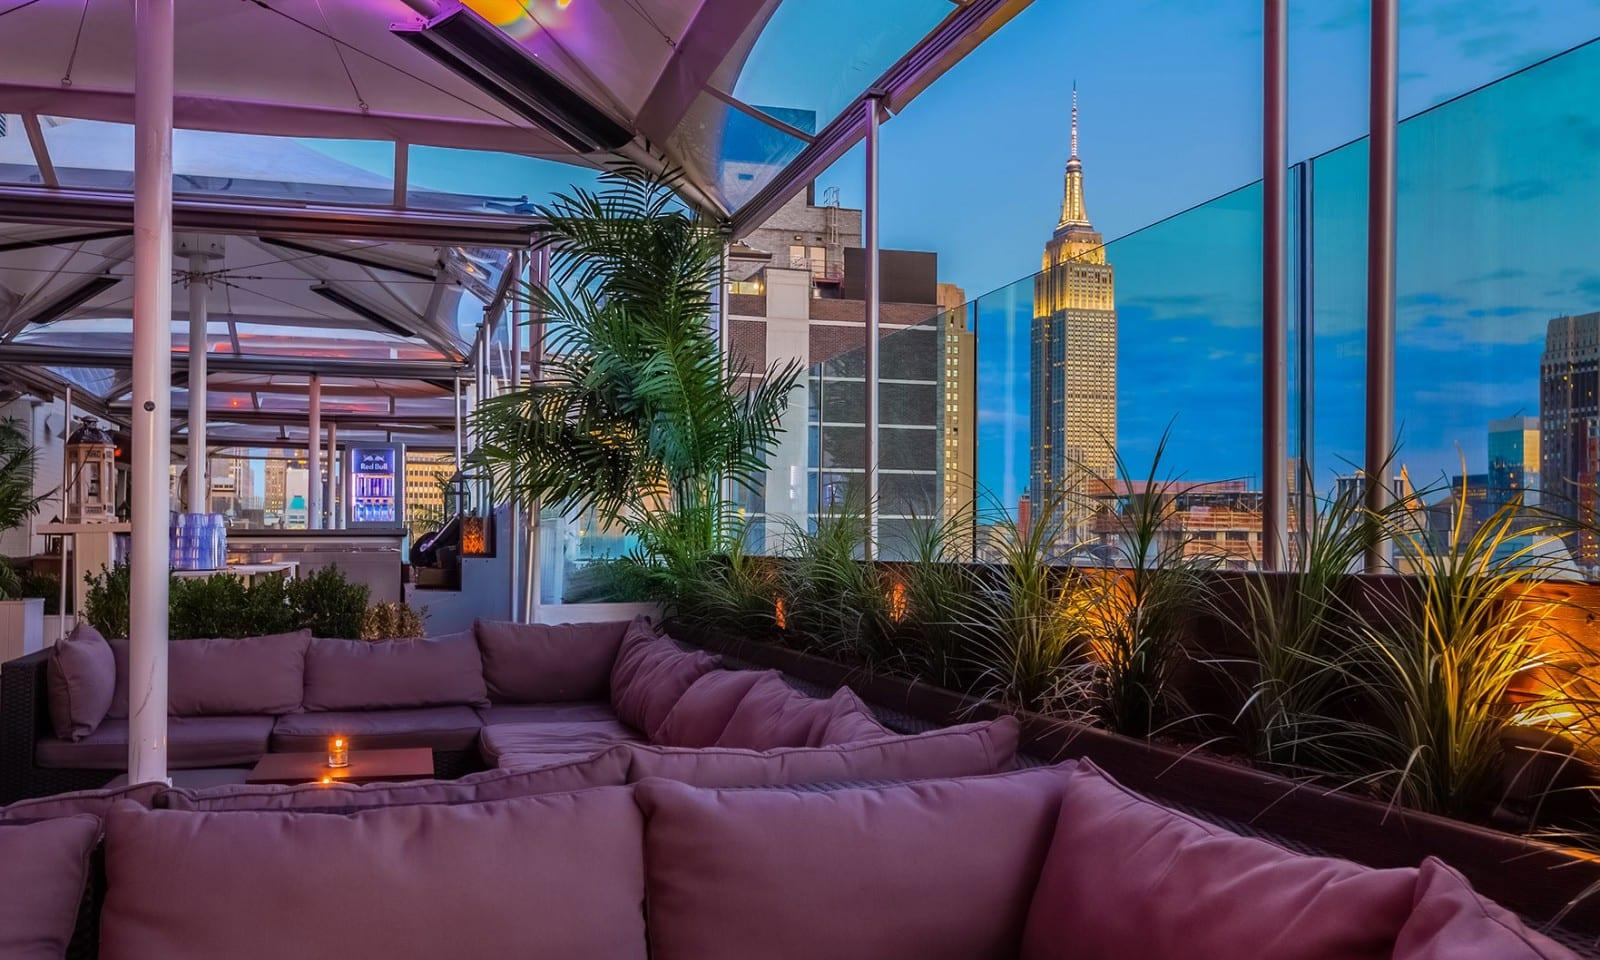 sky room bar view at empire state building